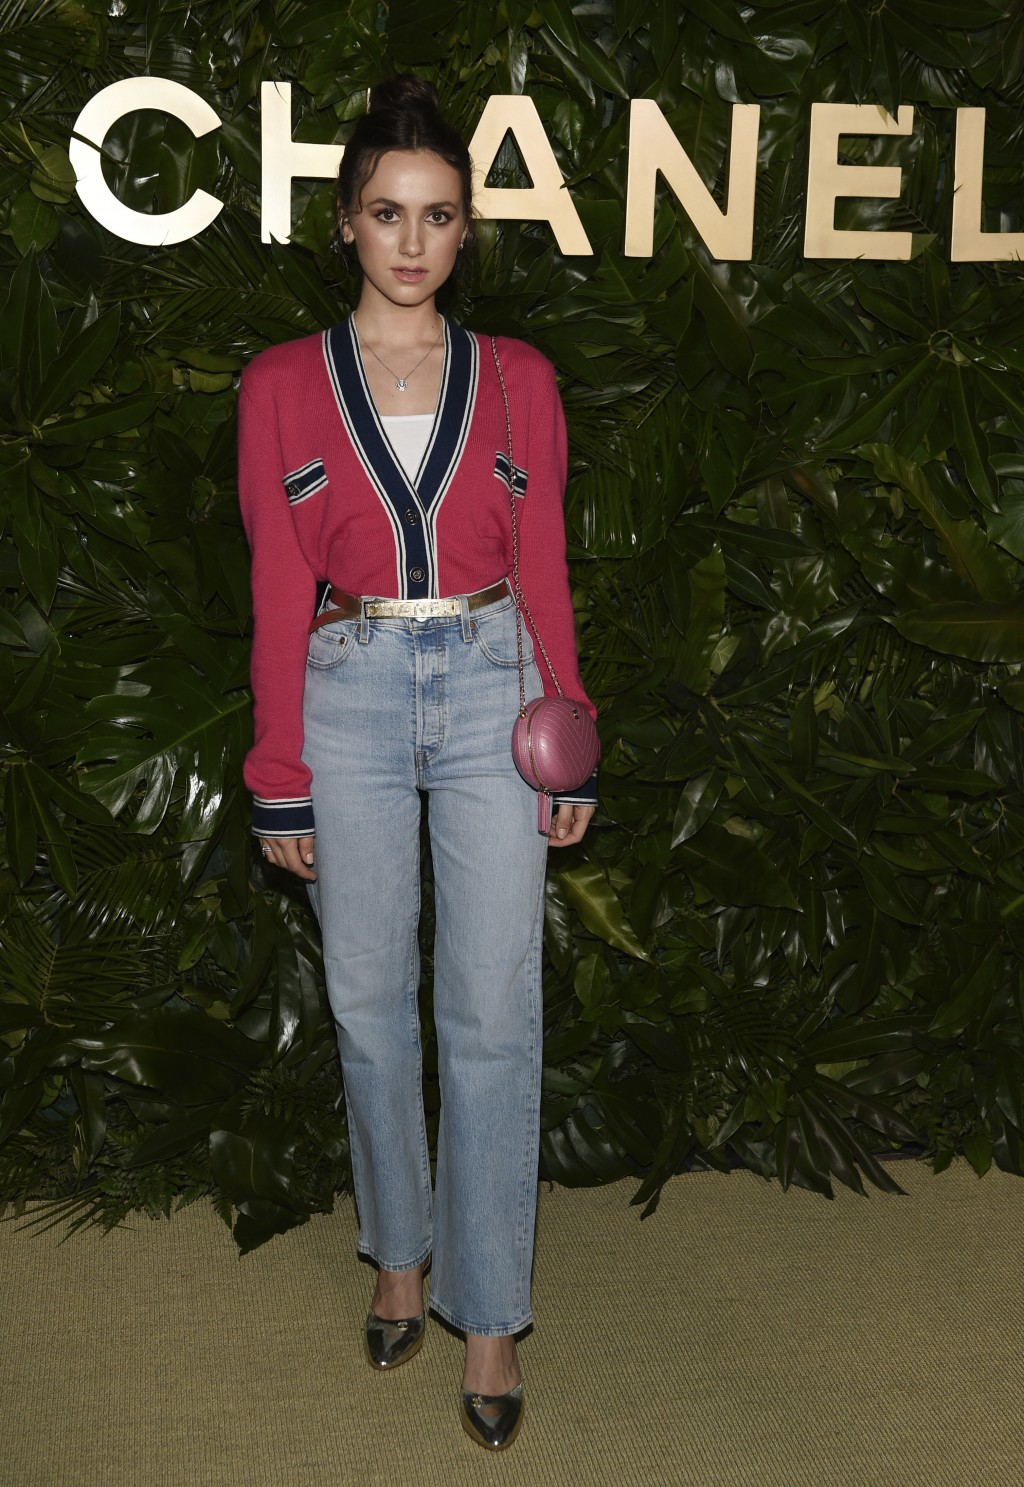 Actress Maude Apatow poses at the launch of the Gabrielle Chanel Essence fragrance at the Chateau Marmont, Thursday, Sept. 12, 2019, in Los Angeles. (